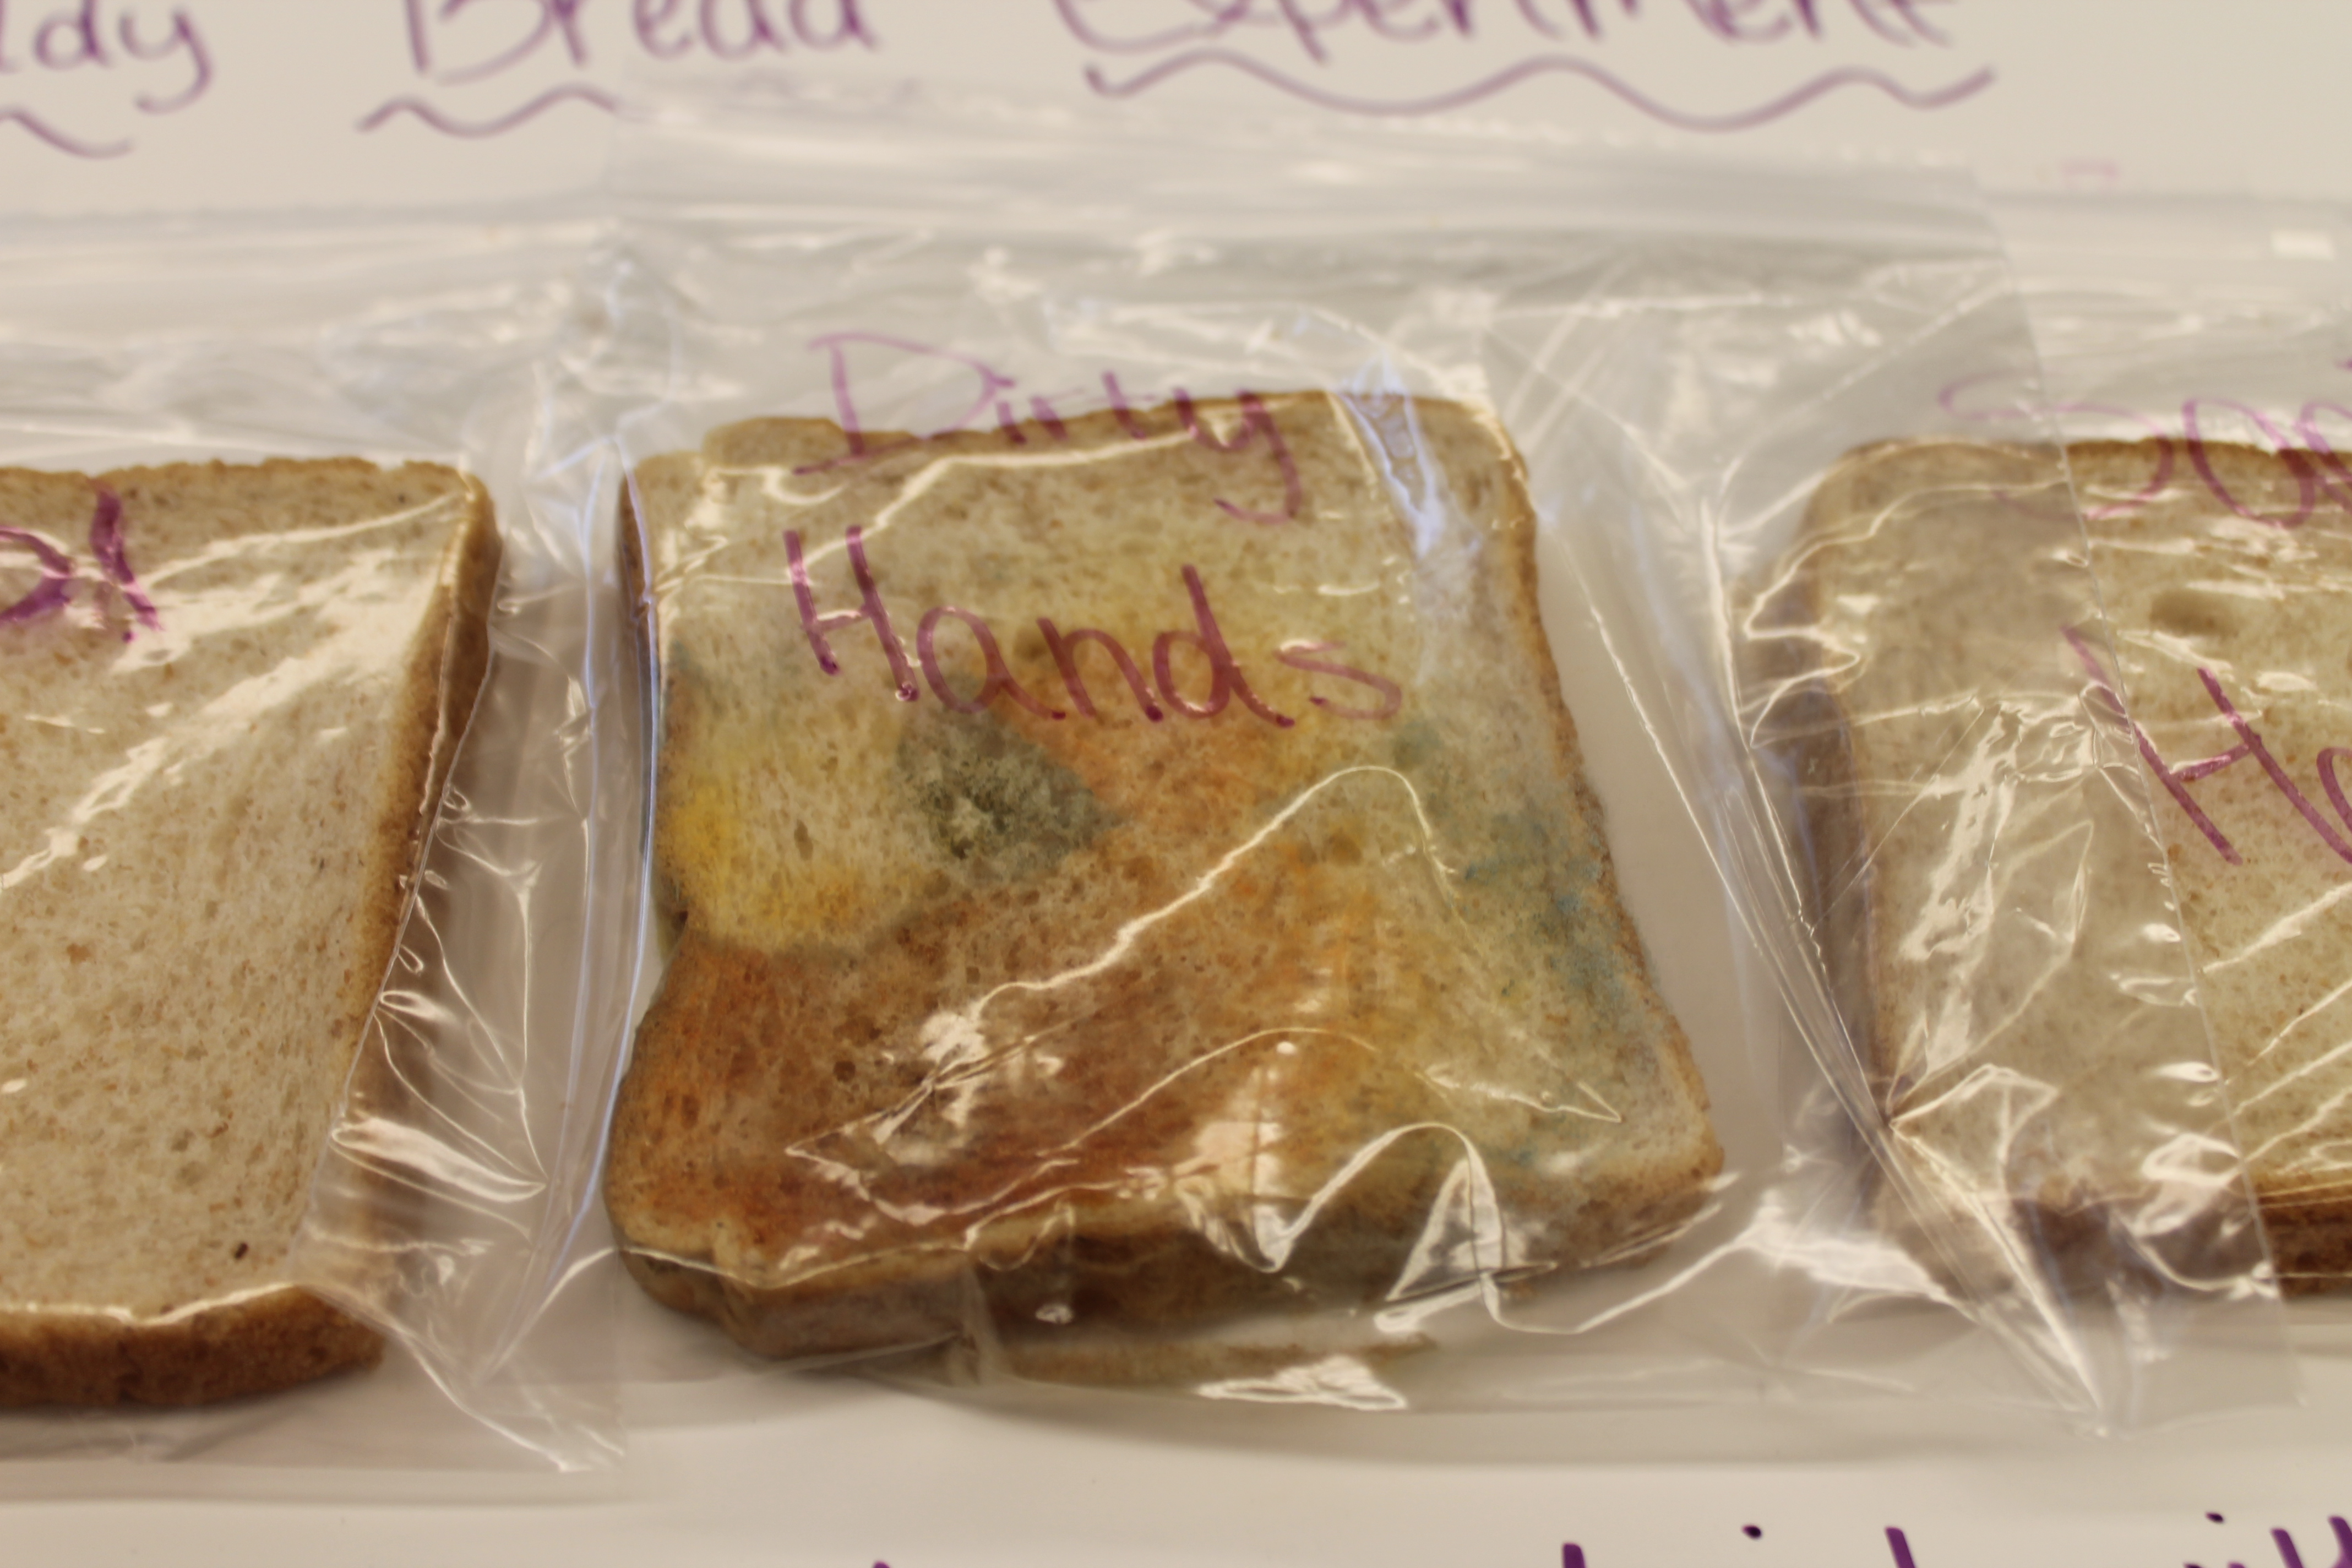 bread mold science project Because mold spores occur naturally, all one has to do to make a piece of bread turn moldy in theory is to simply wait for it to grow mold, though it is possible to use bottled mold spores to accelerate the molding process however, some breads made with artificial or natural preservatives may not.